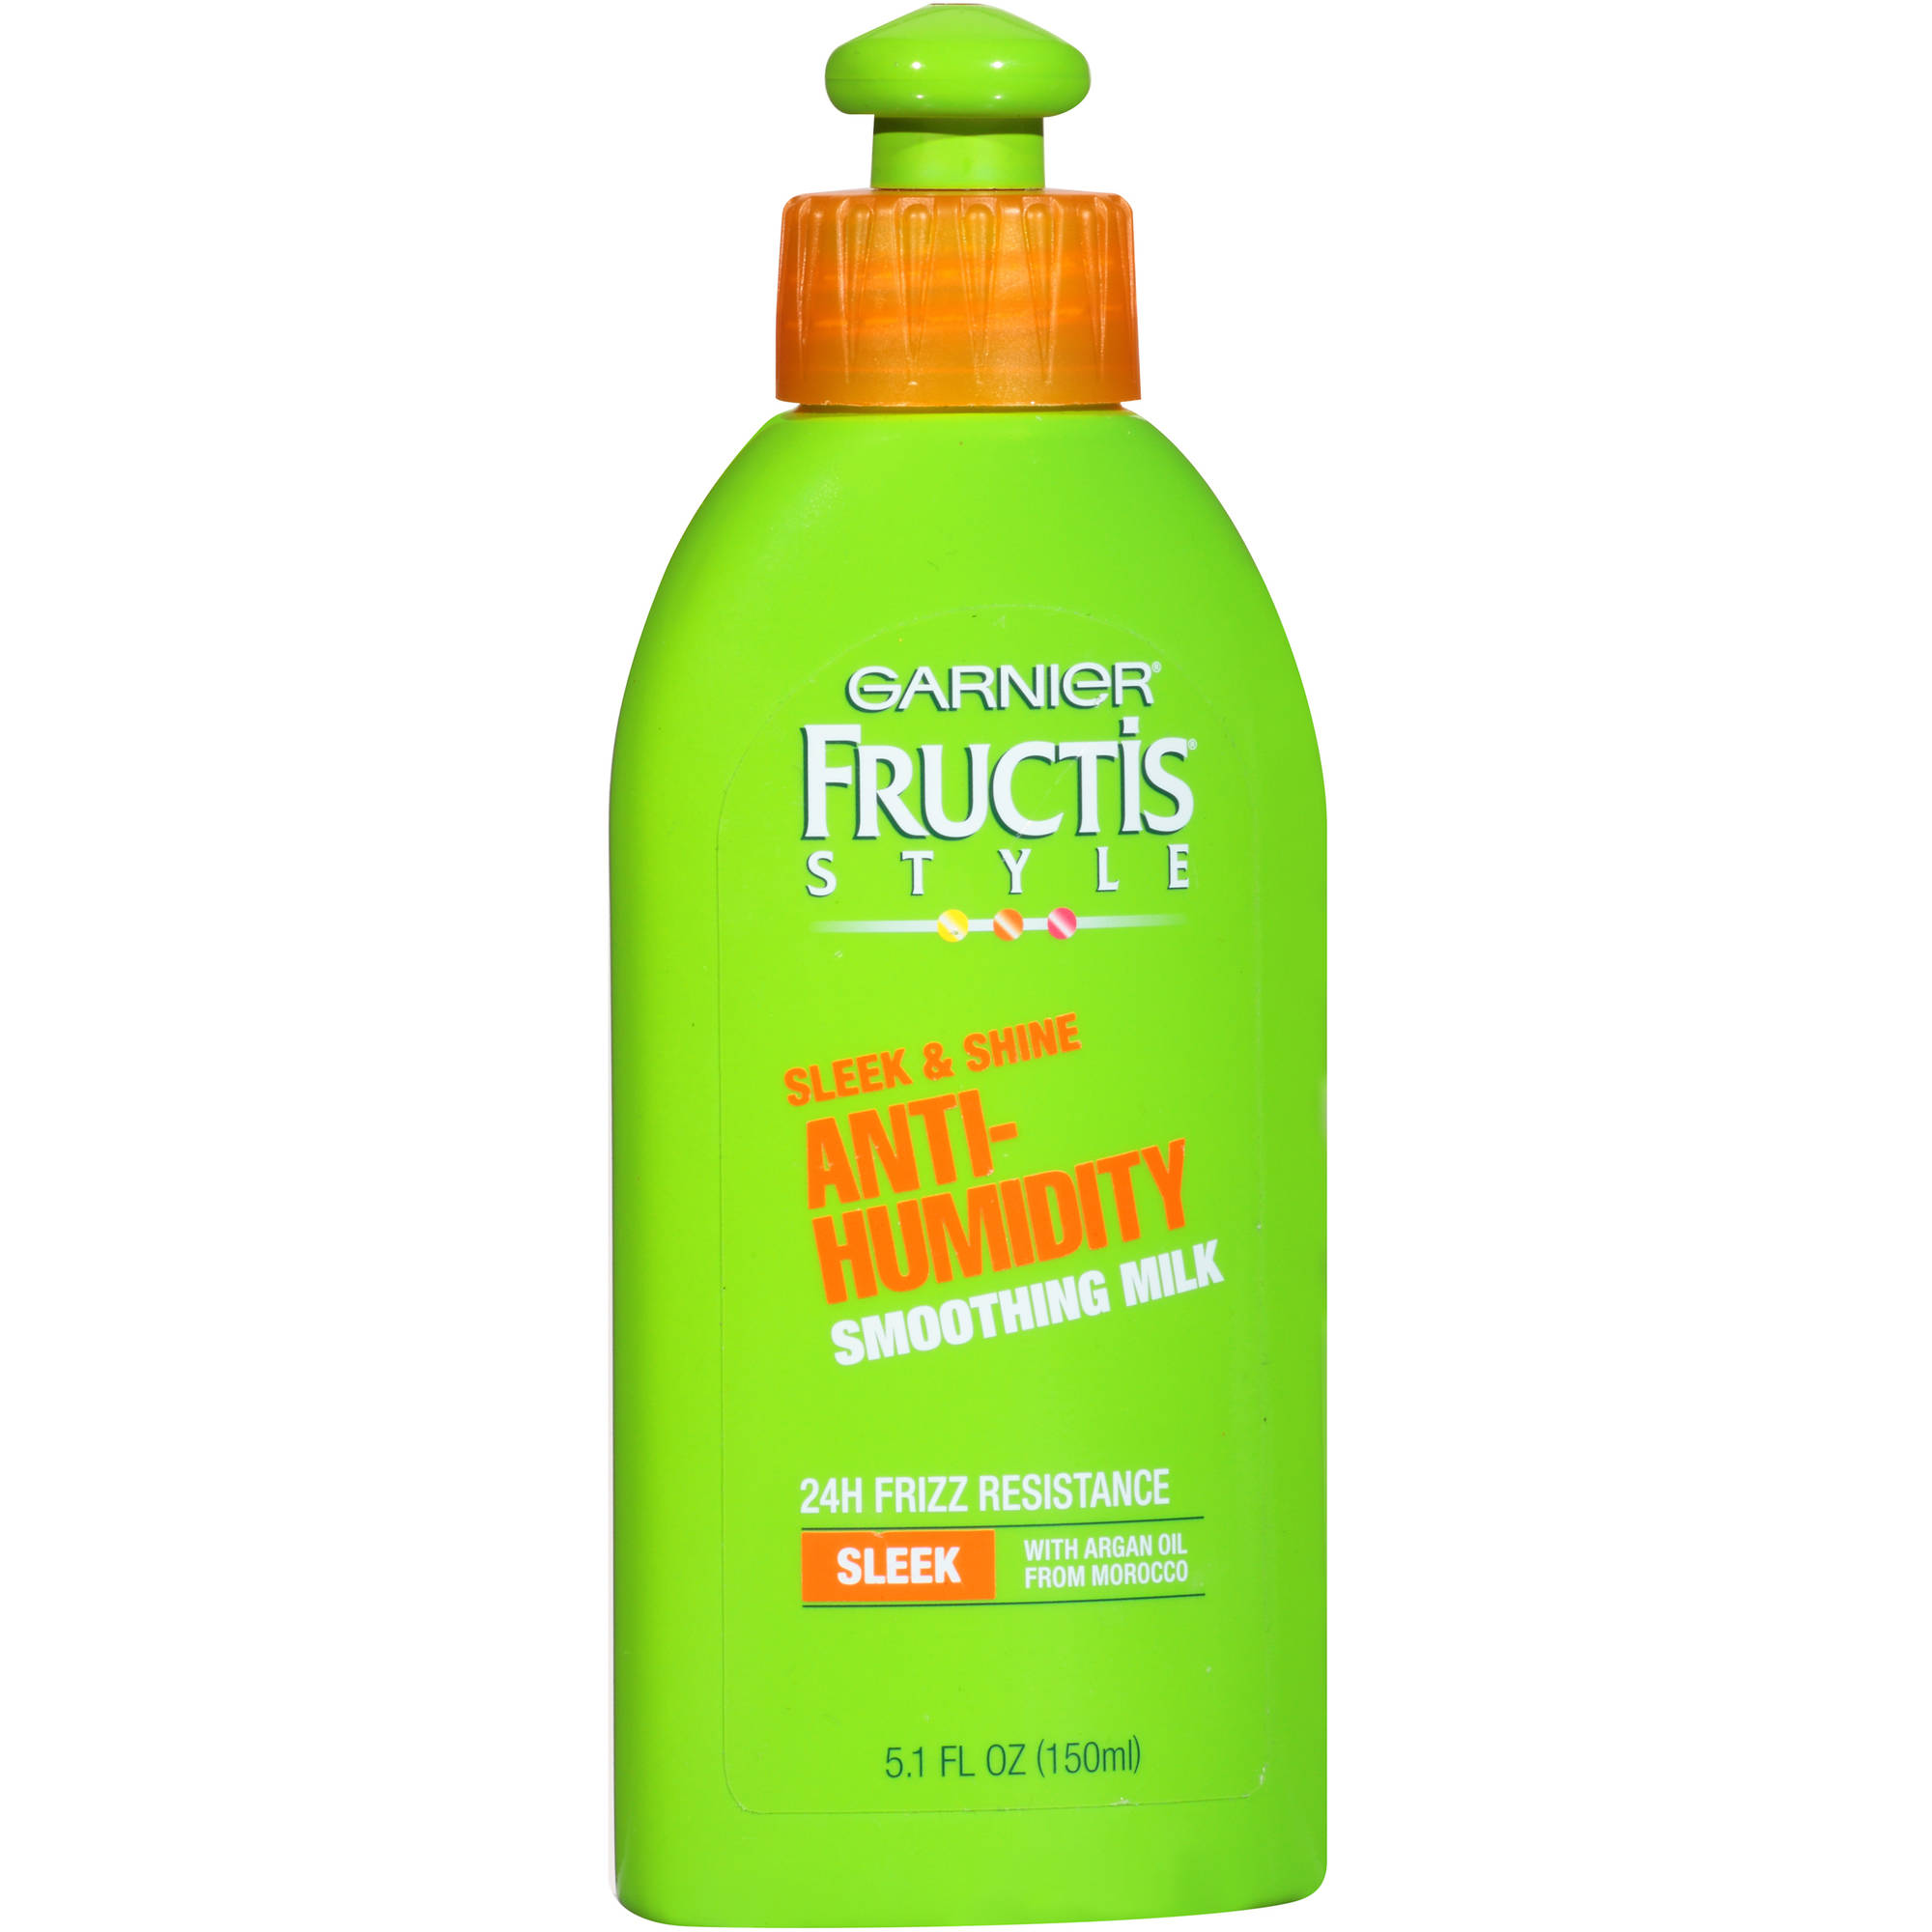 Garnier Fructis Style Sleek and Shine Smoothing Milk, 5.1 fl oz